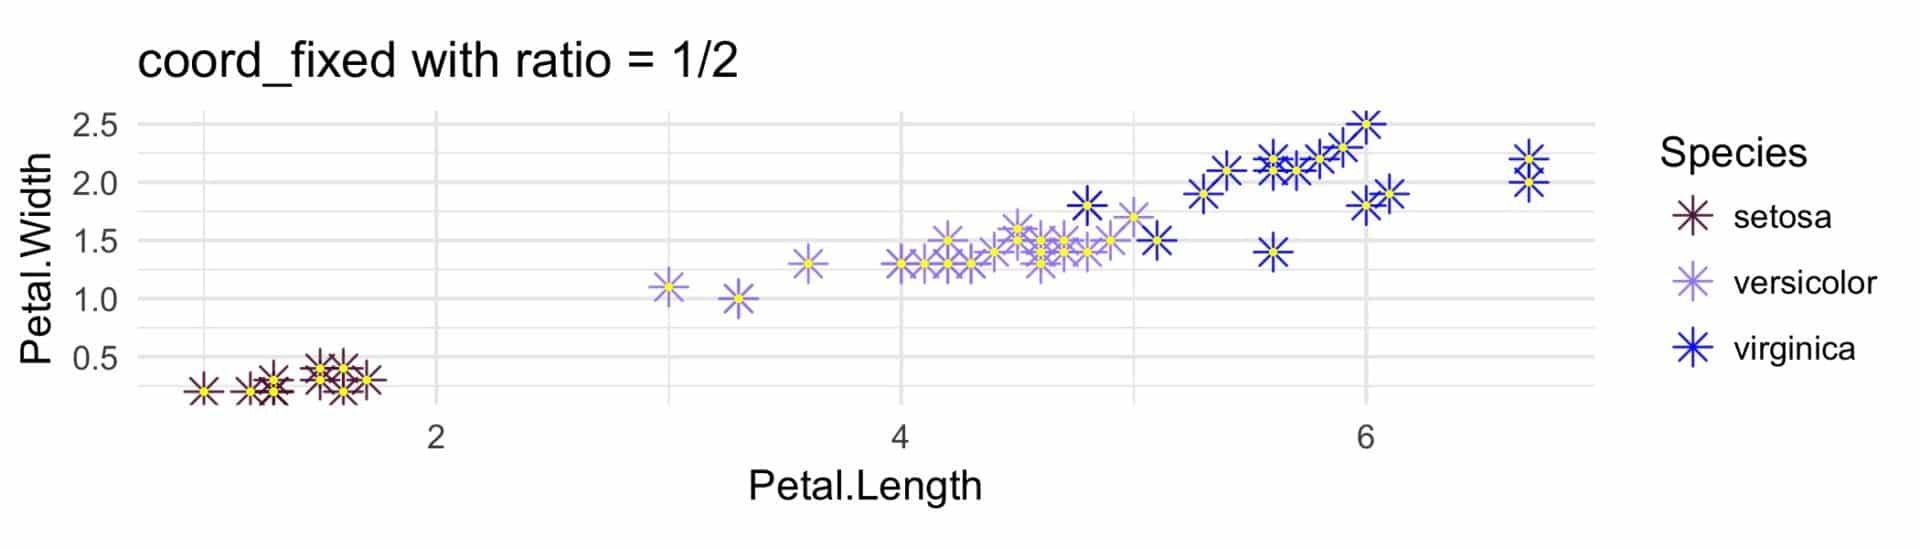 Coordinate systems in ggplot2: easily overlooked and rather